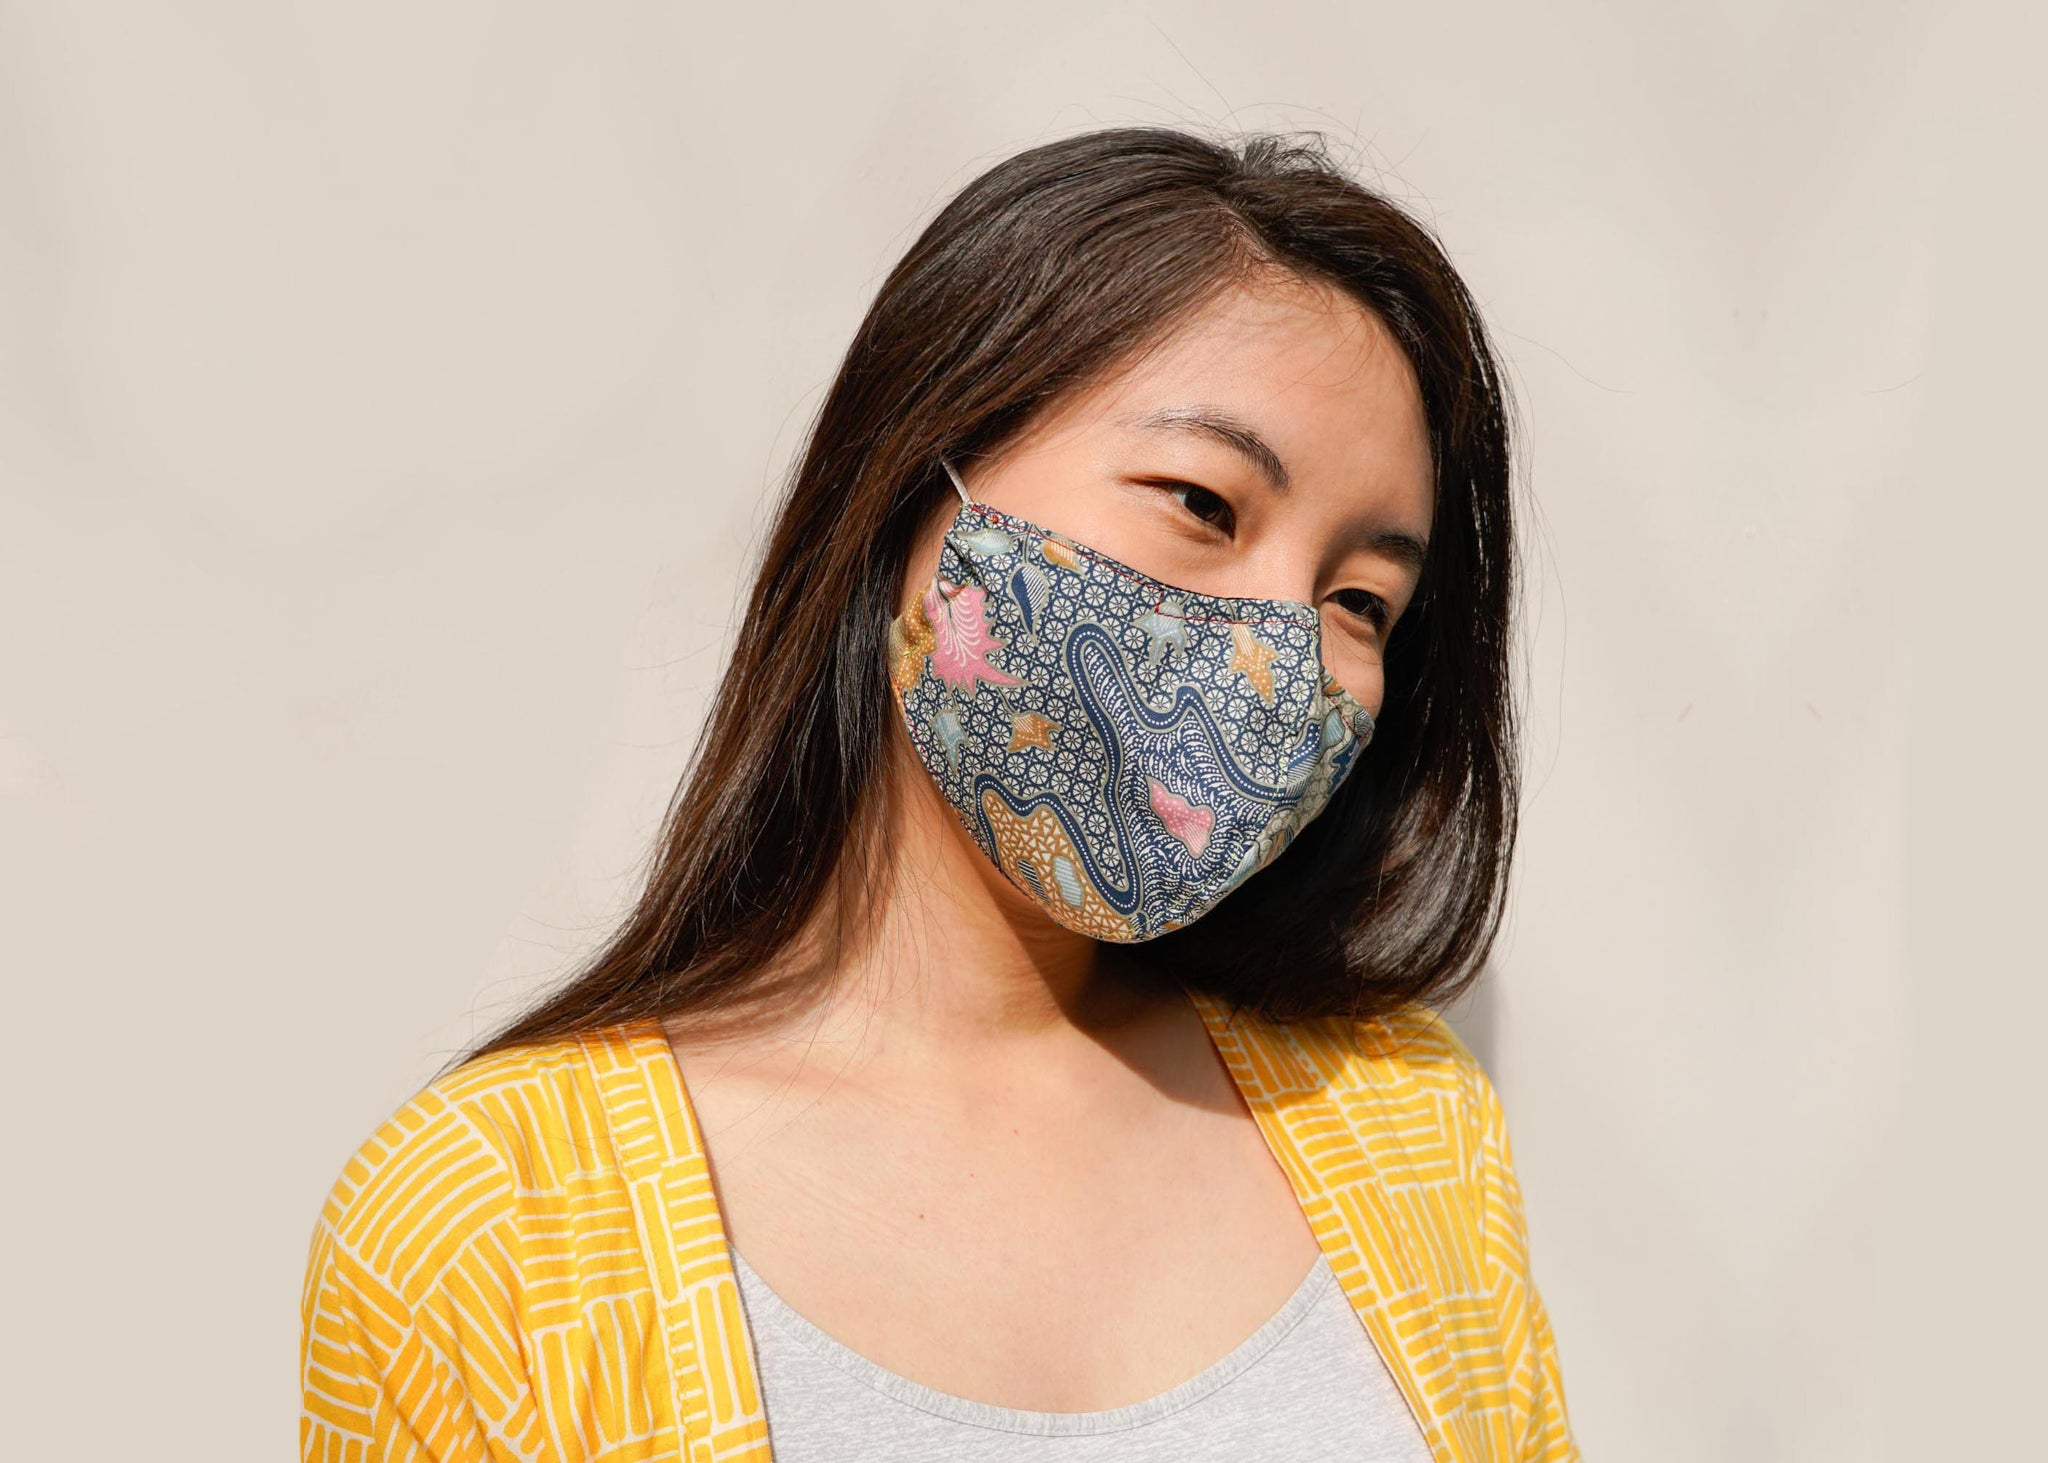 Short of masks? Make your own fabric mask (with nose wire and filter pocket!)